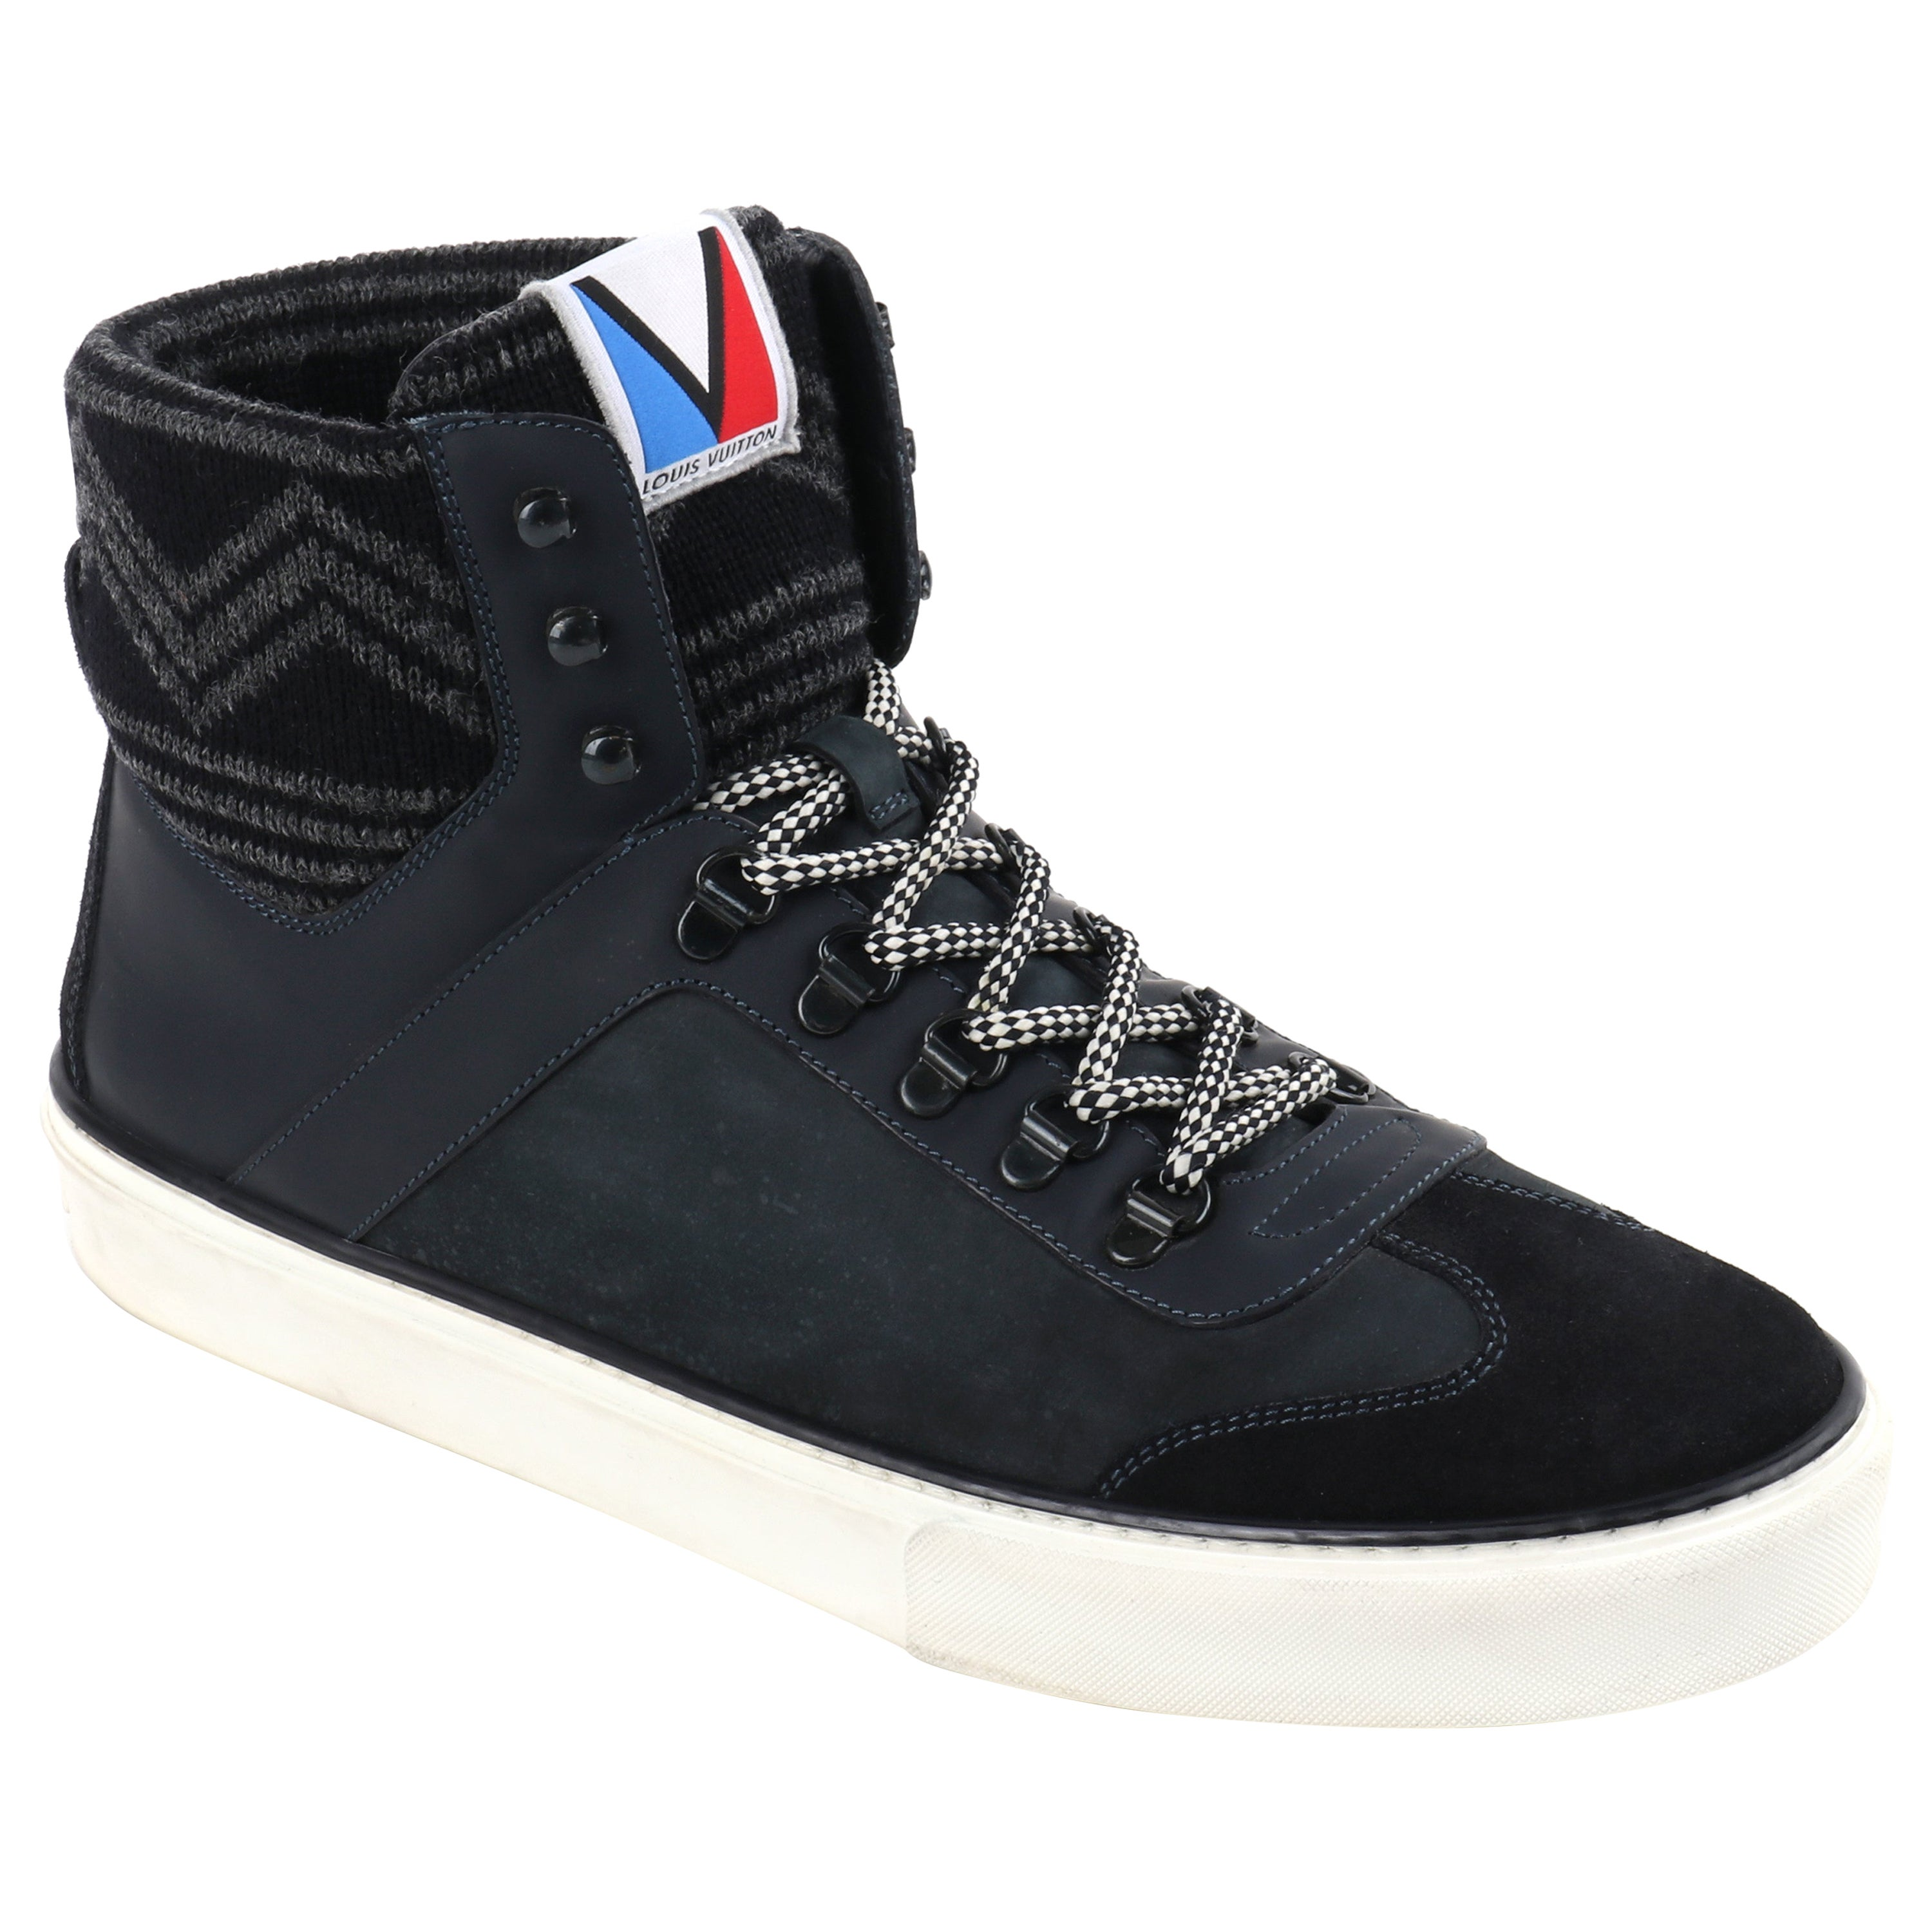 """LOUIS VUITTON F/W 2012 """"Breaking Away"""" LV Cup Leather Mountaineer Sneaker Boots"""